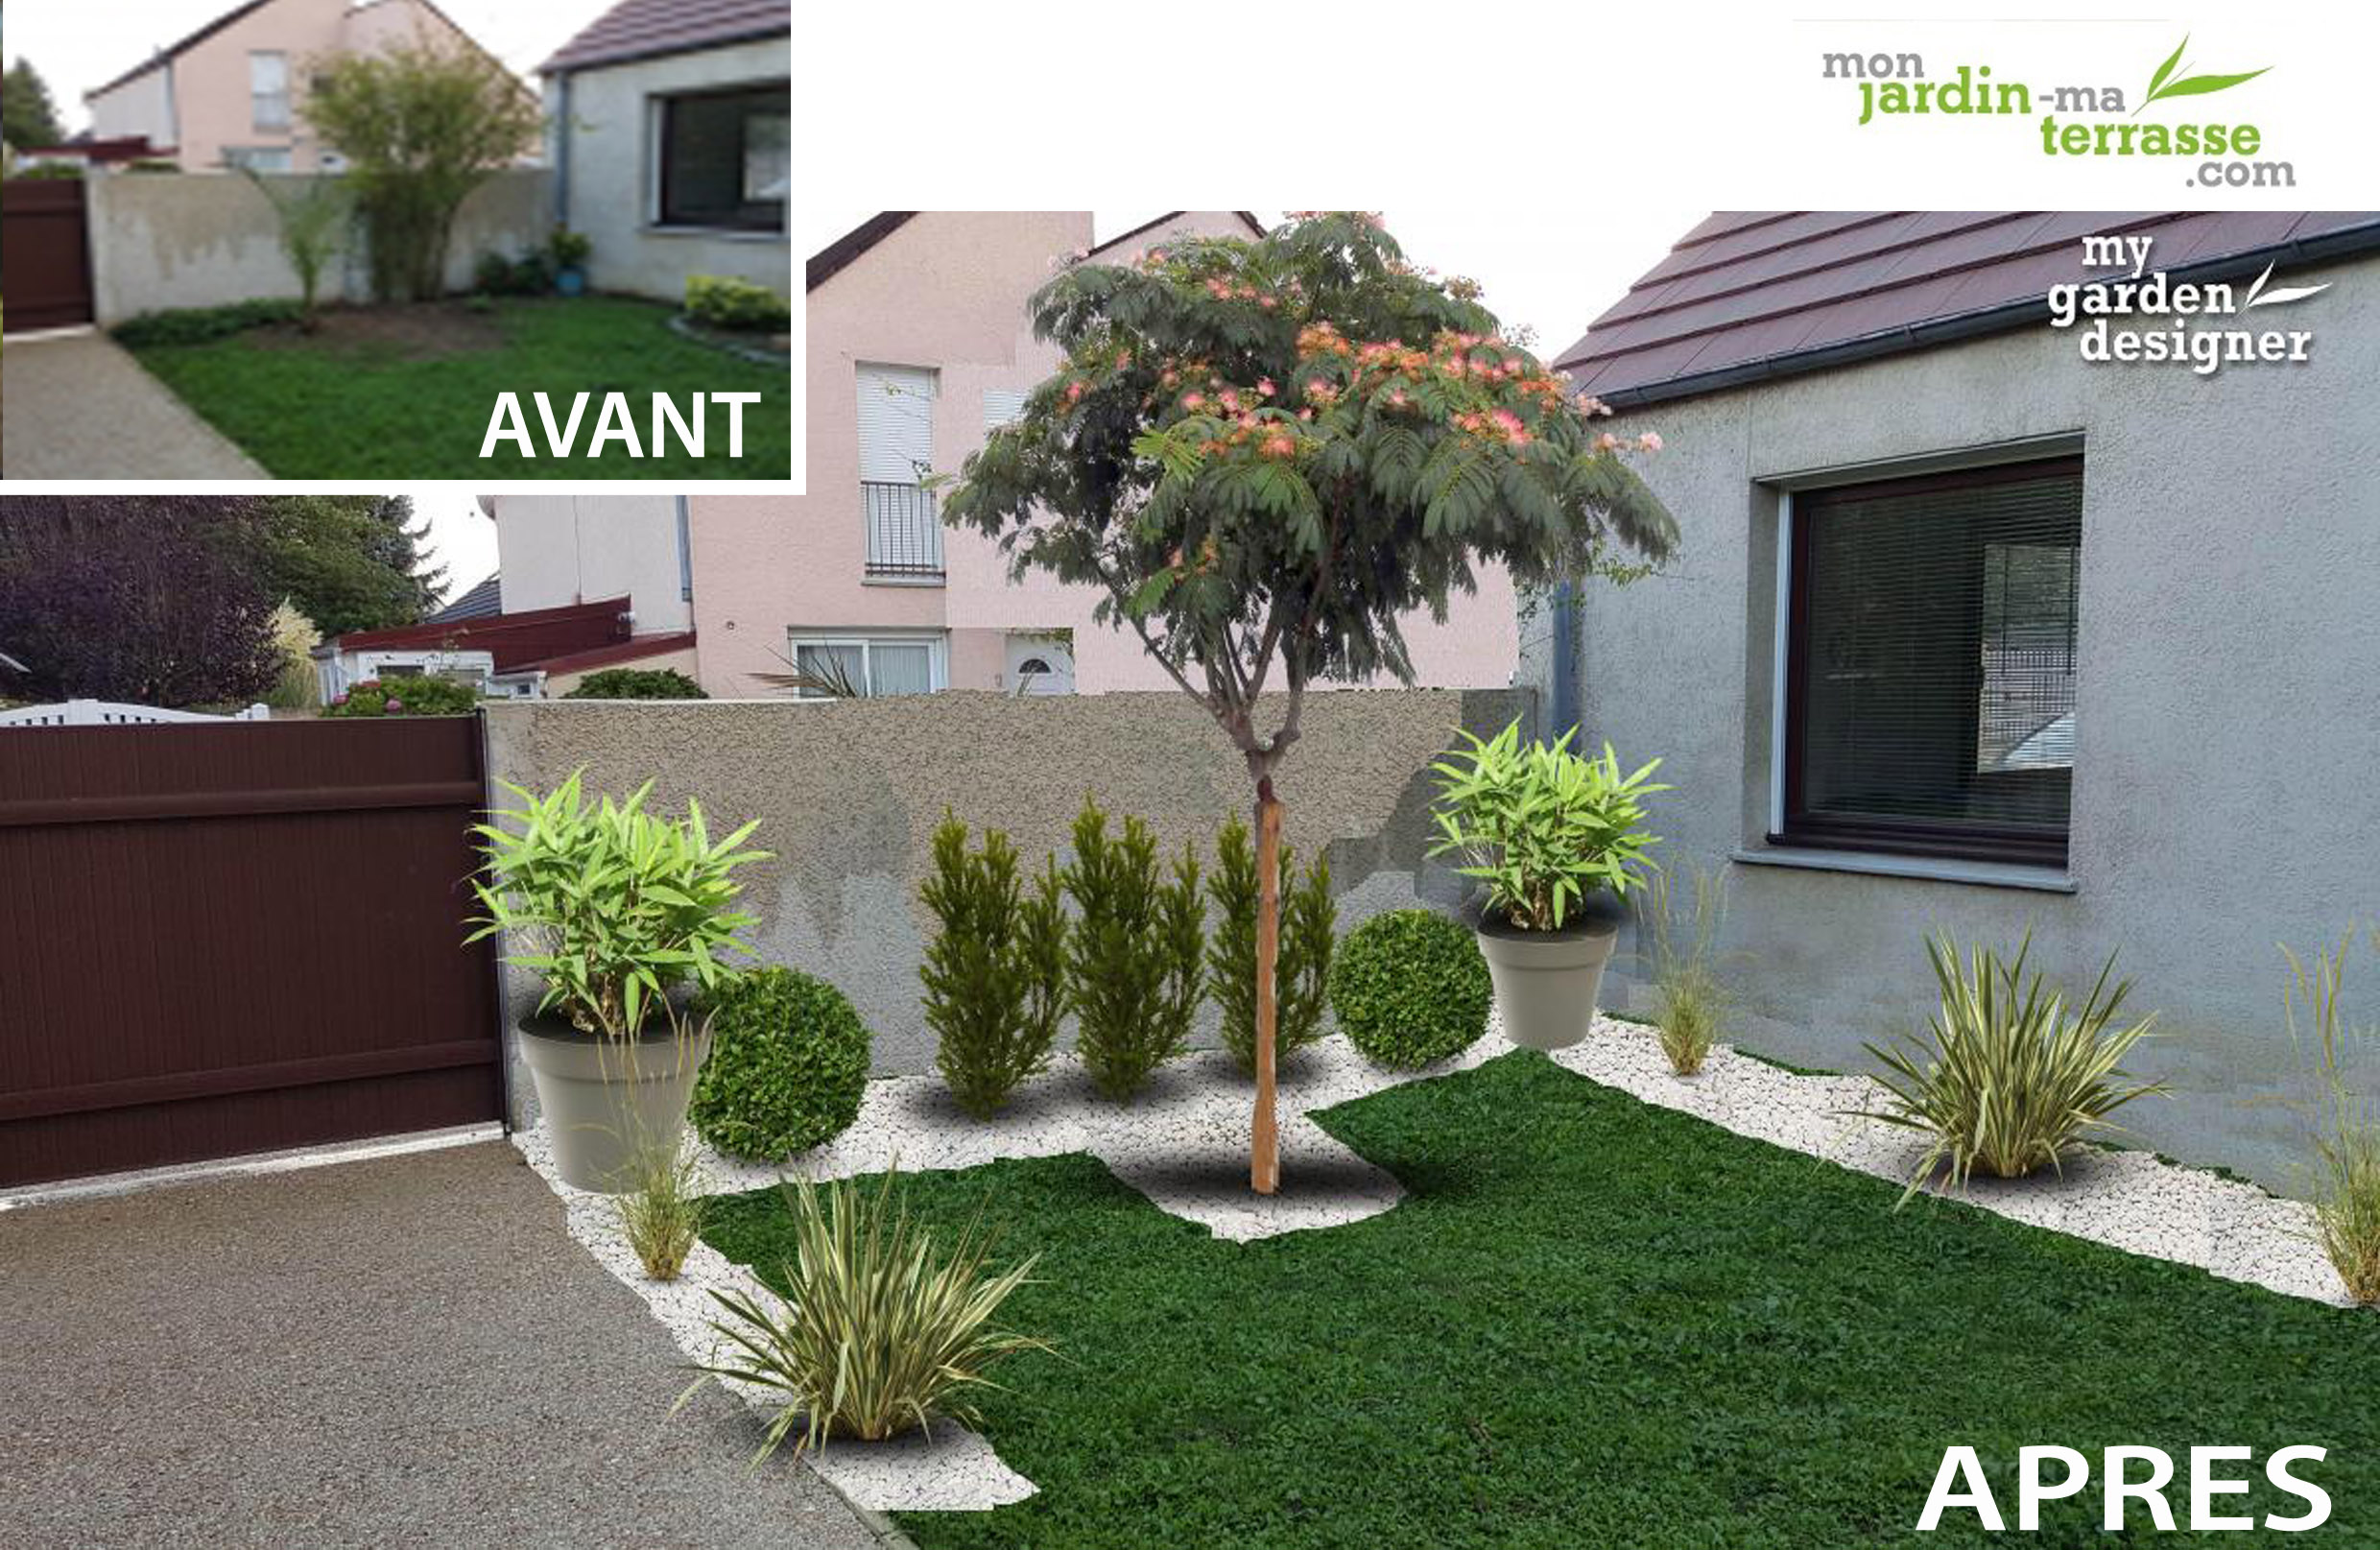 Am nager un petit jardin de 30m monjardin for Amenagement de jardin exterieur